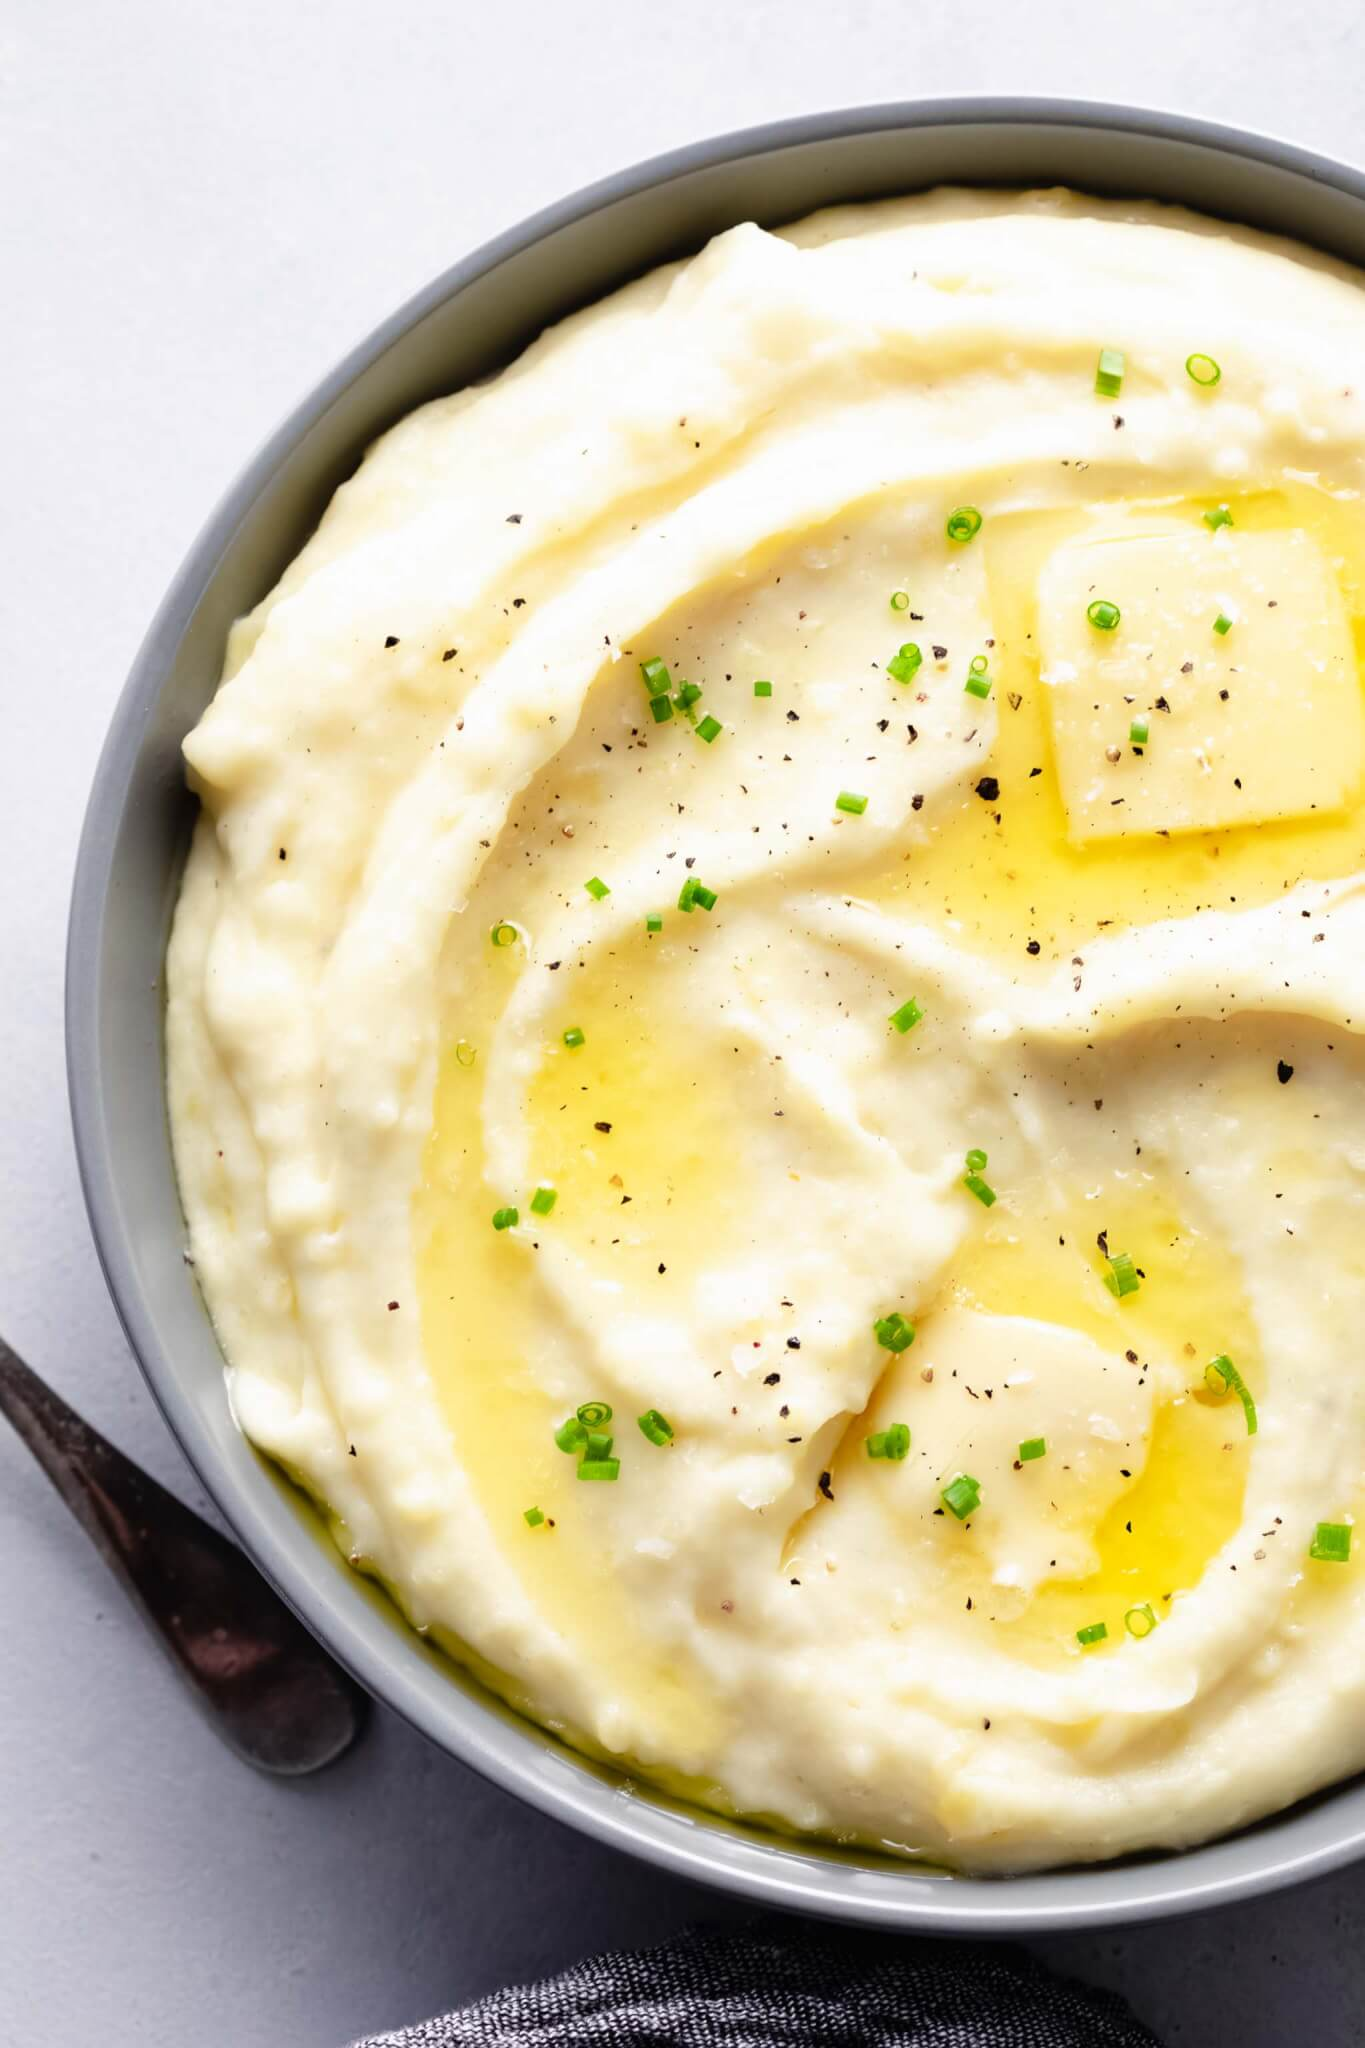 Instant Pot Mashed Potatoes with Sour Cream are the most delicious mashed potatoes you will ever have. They're light, creamy, buttery & quick to make with the help of your pressure cooker.